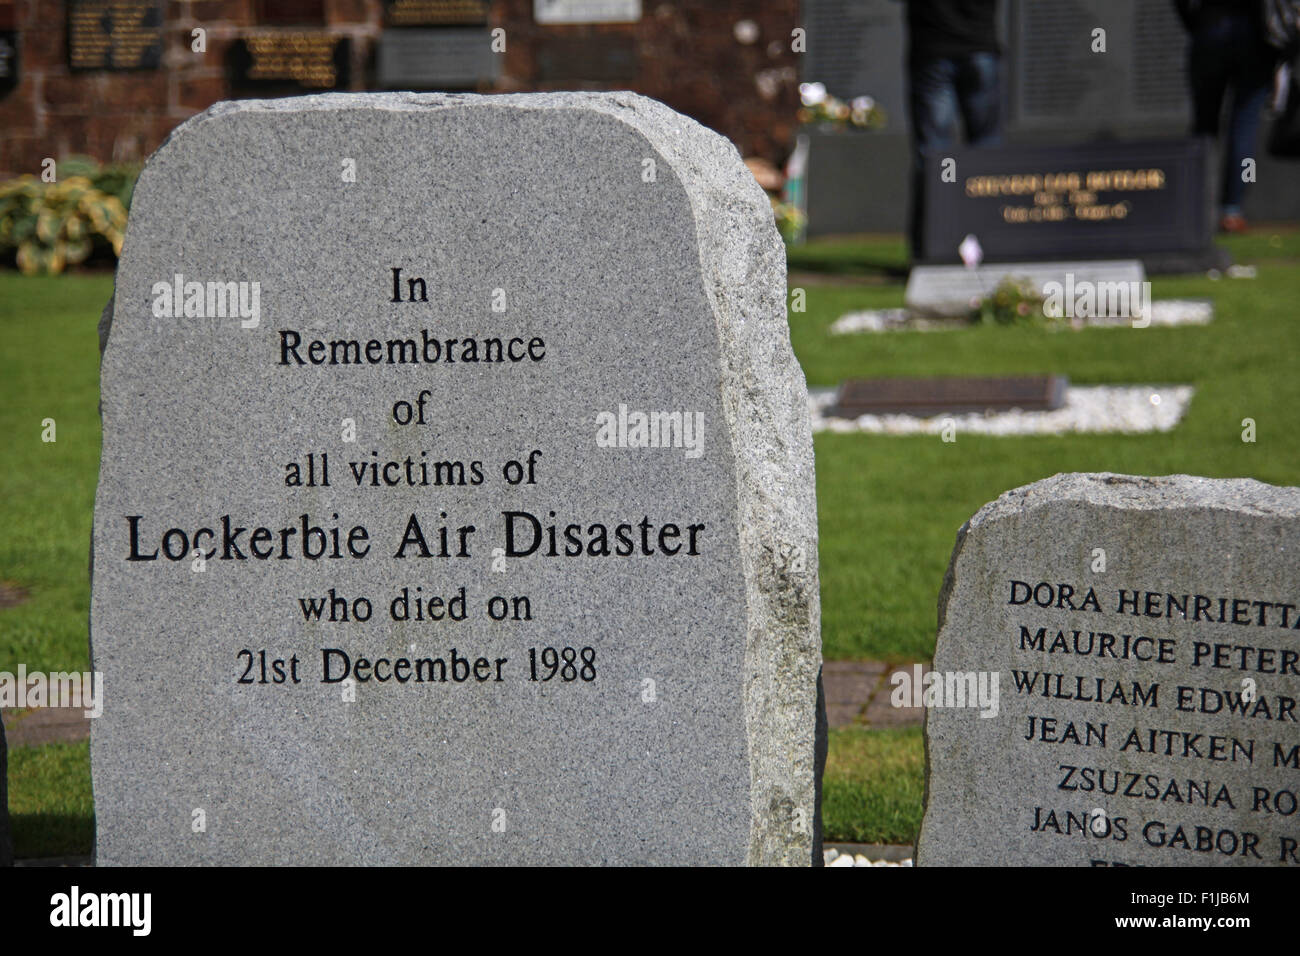 Lockerbie PanAm103 In Rememberance Memorial Stone, Scotland, UK - Stock Image